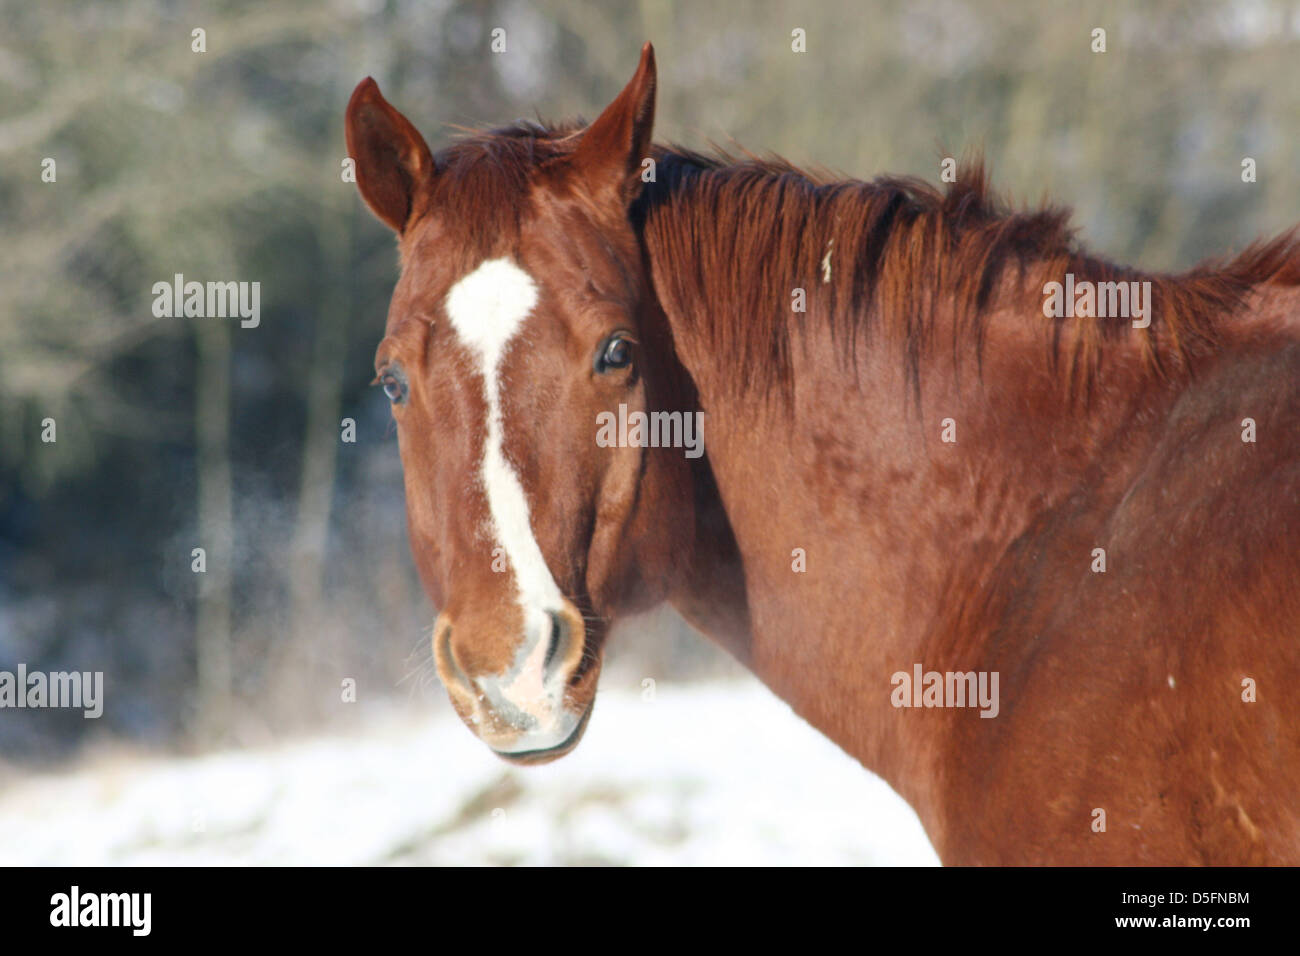 a brown horse - Stock Image